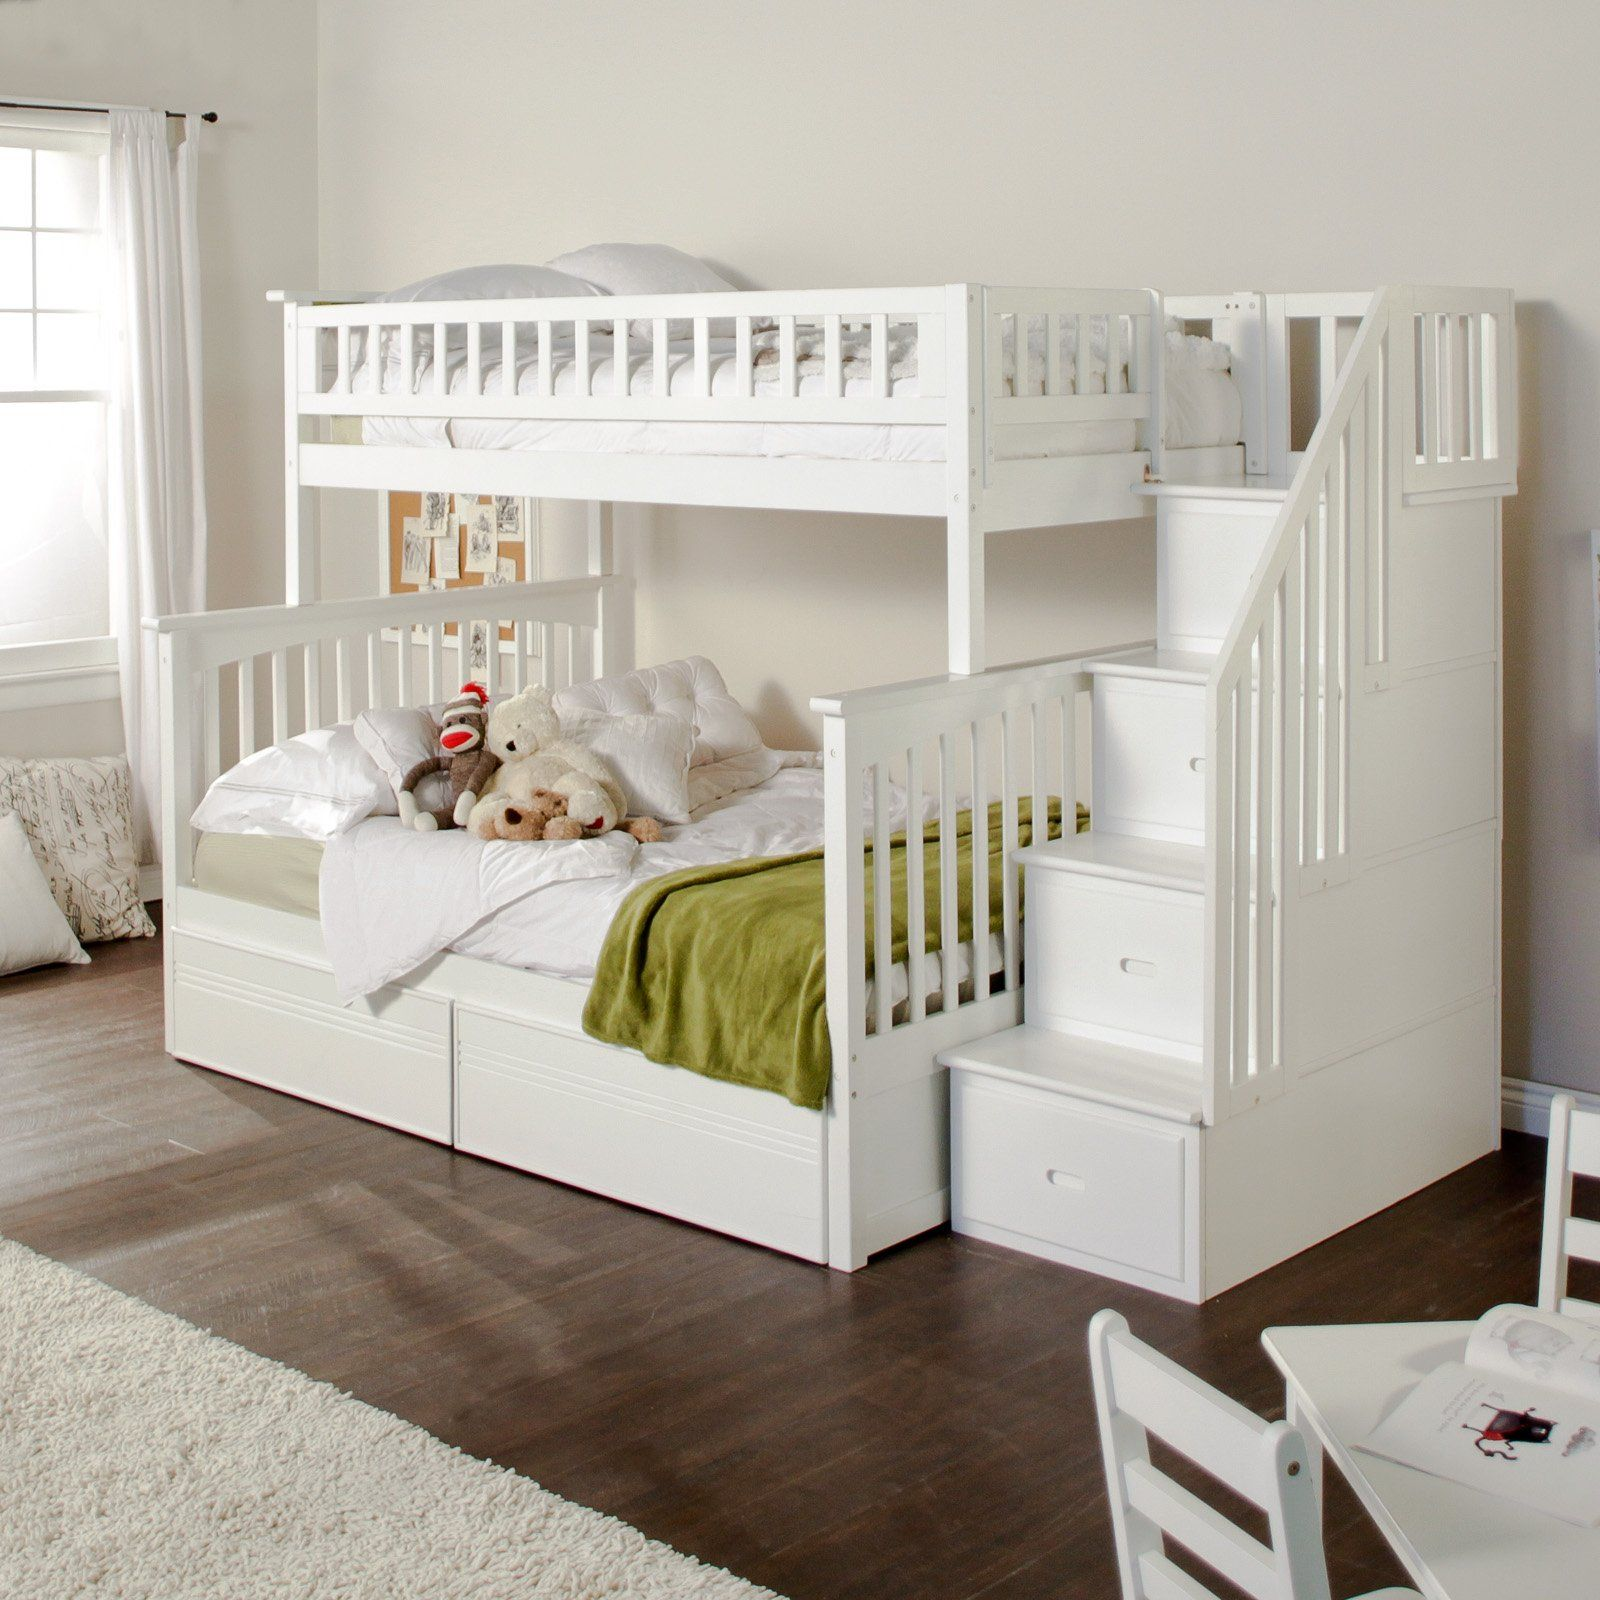 Space Saving Bunk Bed Amusing 30 Space Saving Beds For Small Rooms  Bunk Bed Stairways And Decorating Design